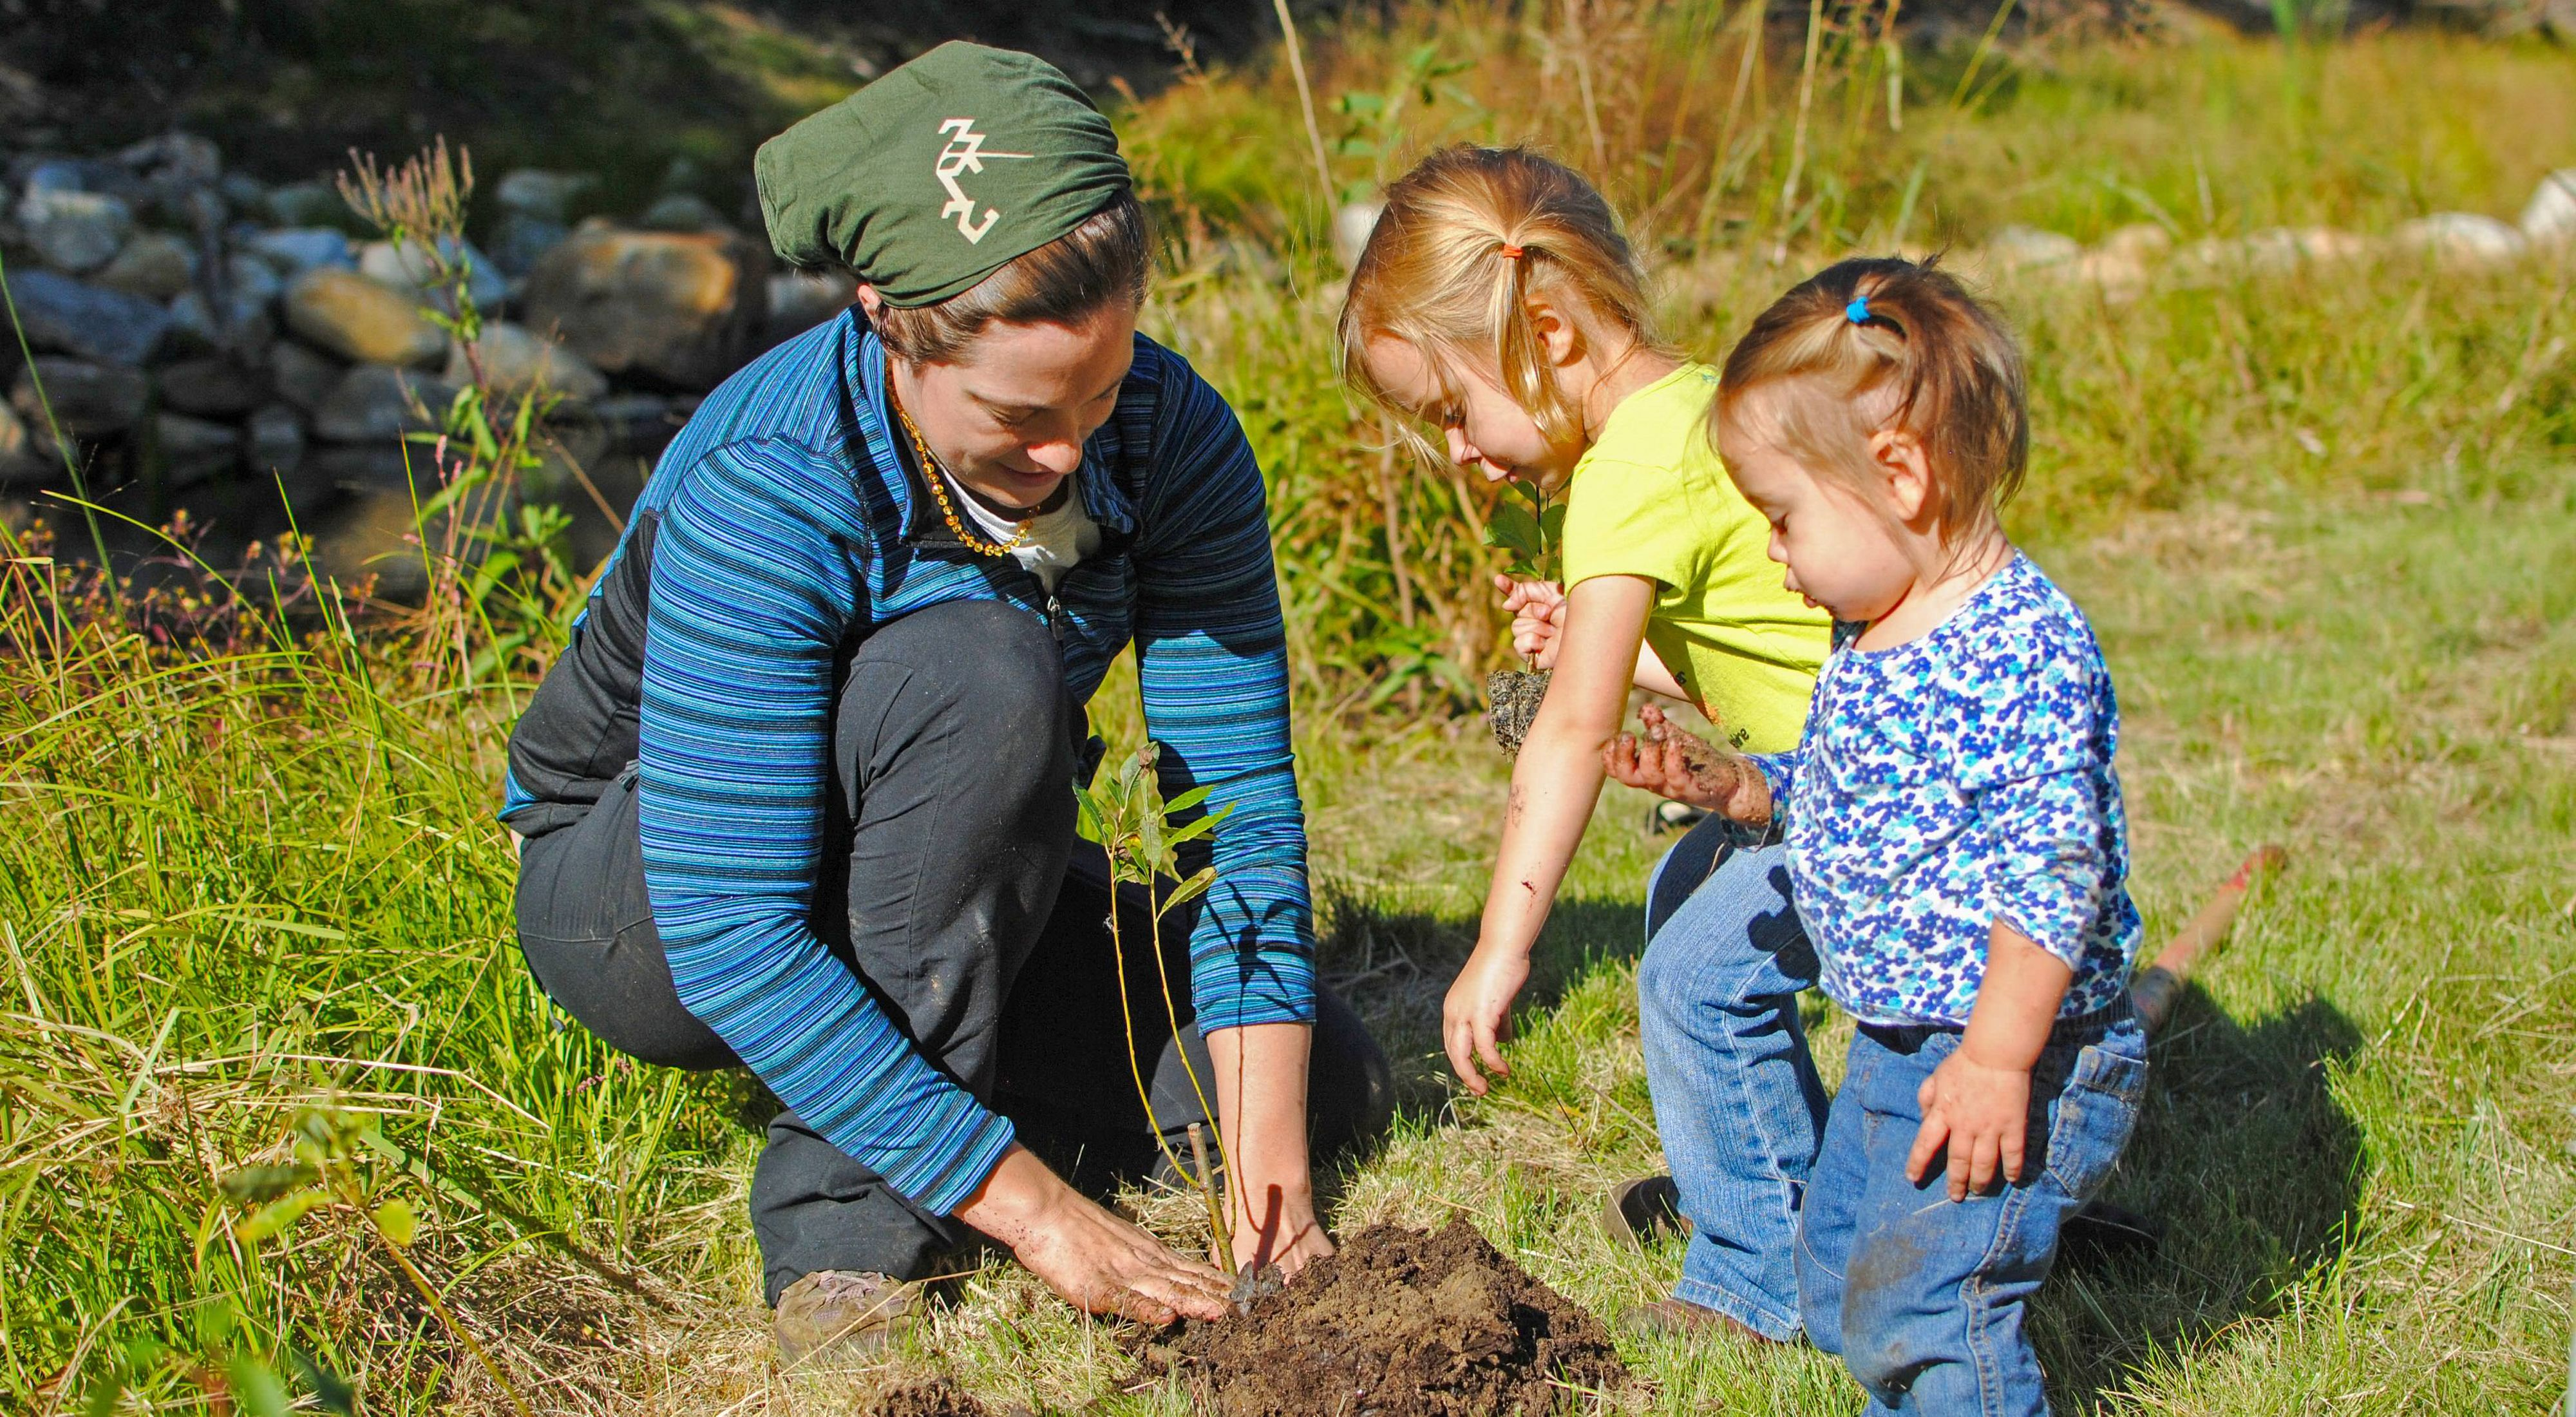 A volunteer plants a tree with help from two young children.